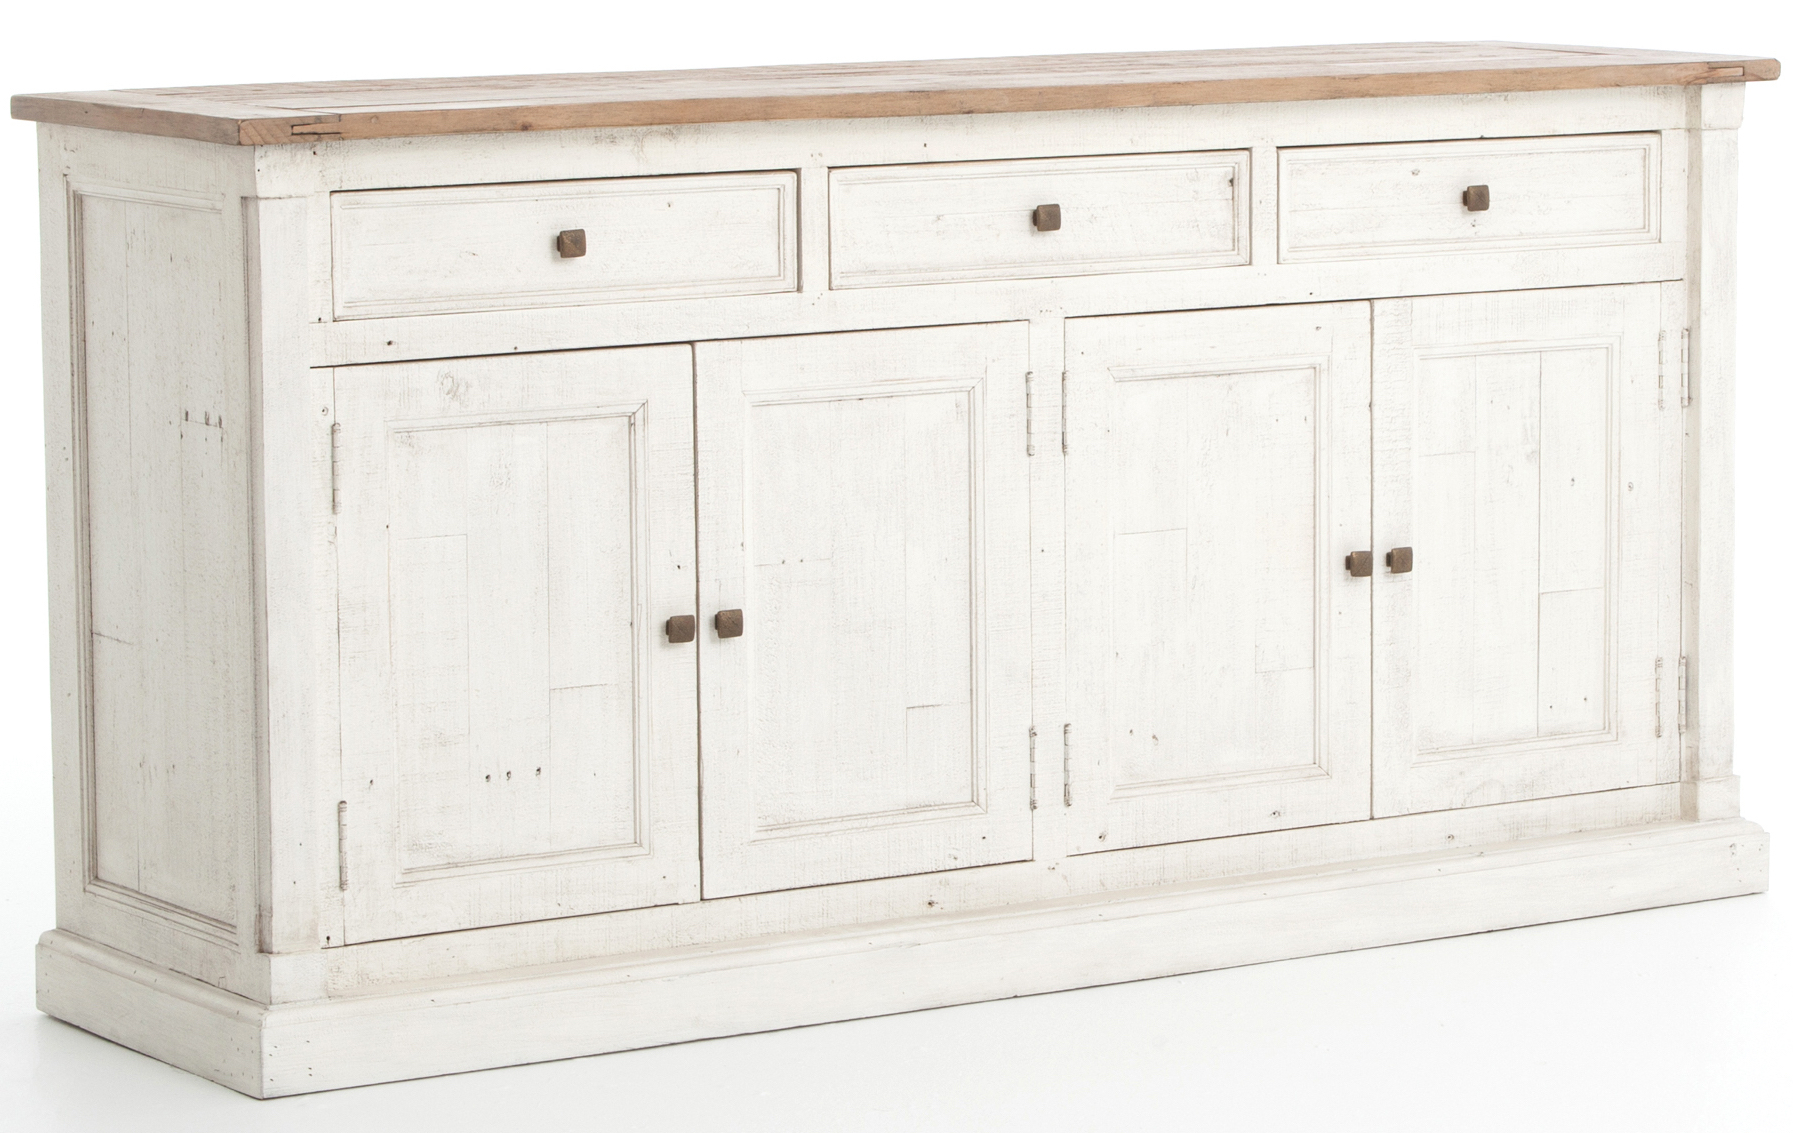 Htgt Furniture Intended For Current Reclaimed Elm 71 Inch Sideboards (View 6 of 20)